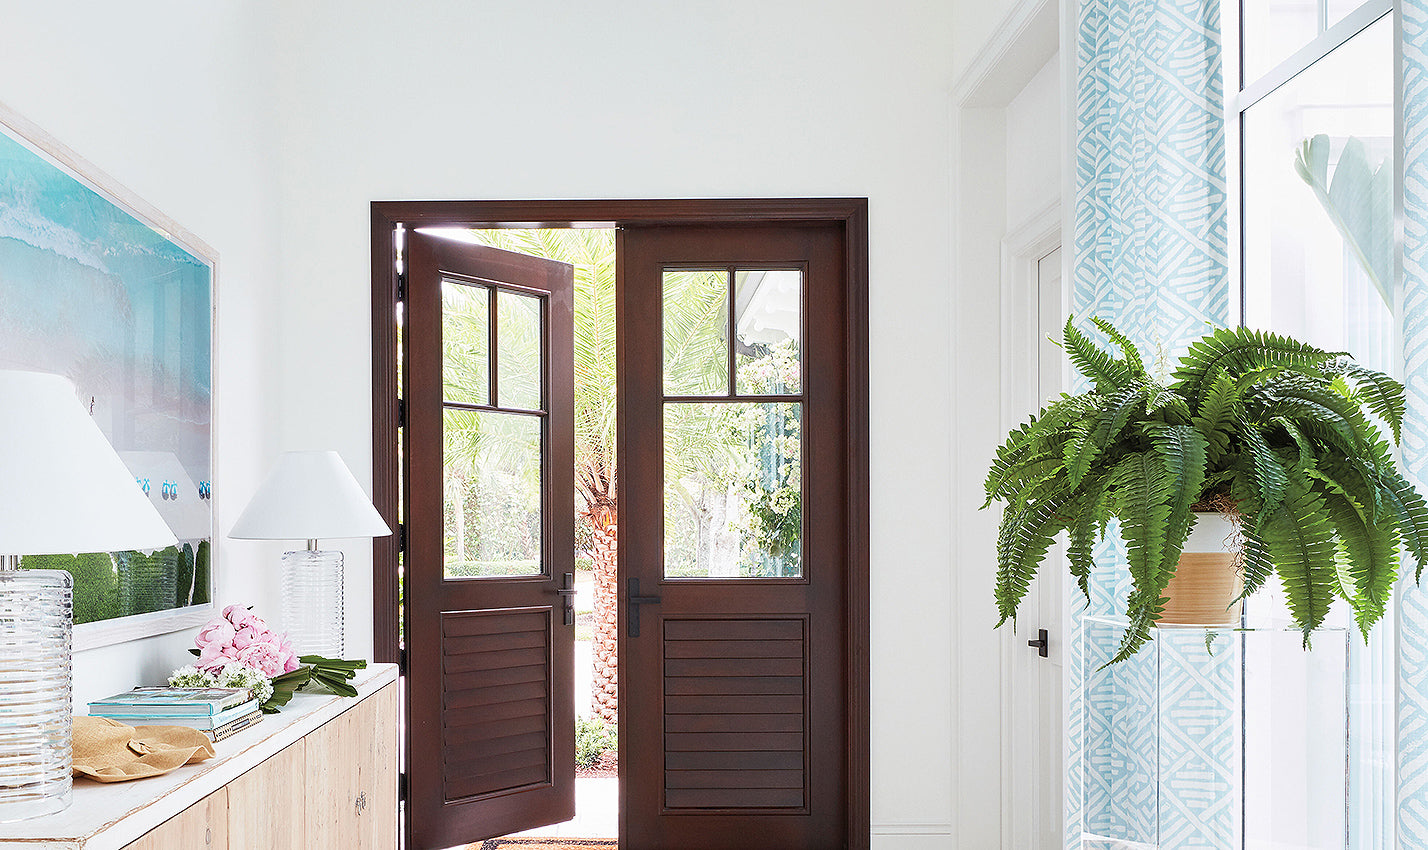 An airy entryway in a Florida home/Photographer: Brantley Photograph/Benjamin Moore's Chantilly Lace white paint appears in a Jupiter, Florida, home designed by Kara Miller of Kara Miller Interiors.